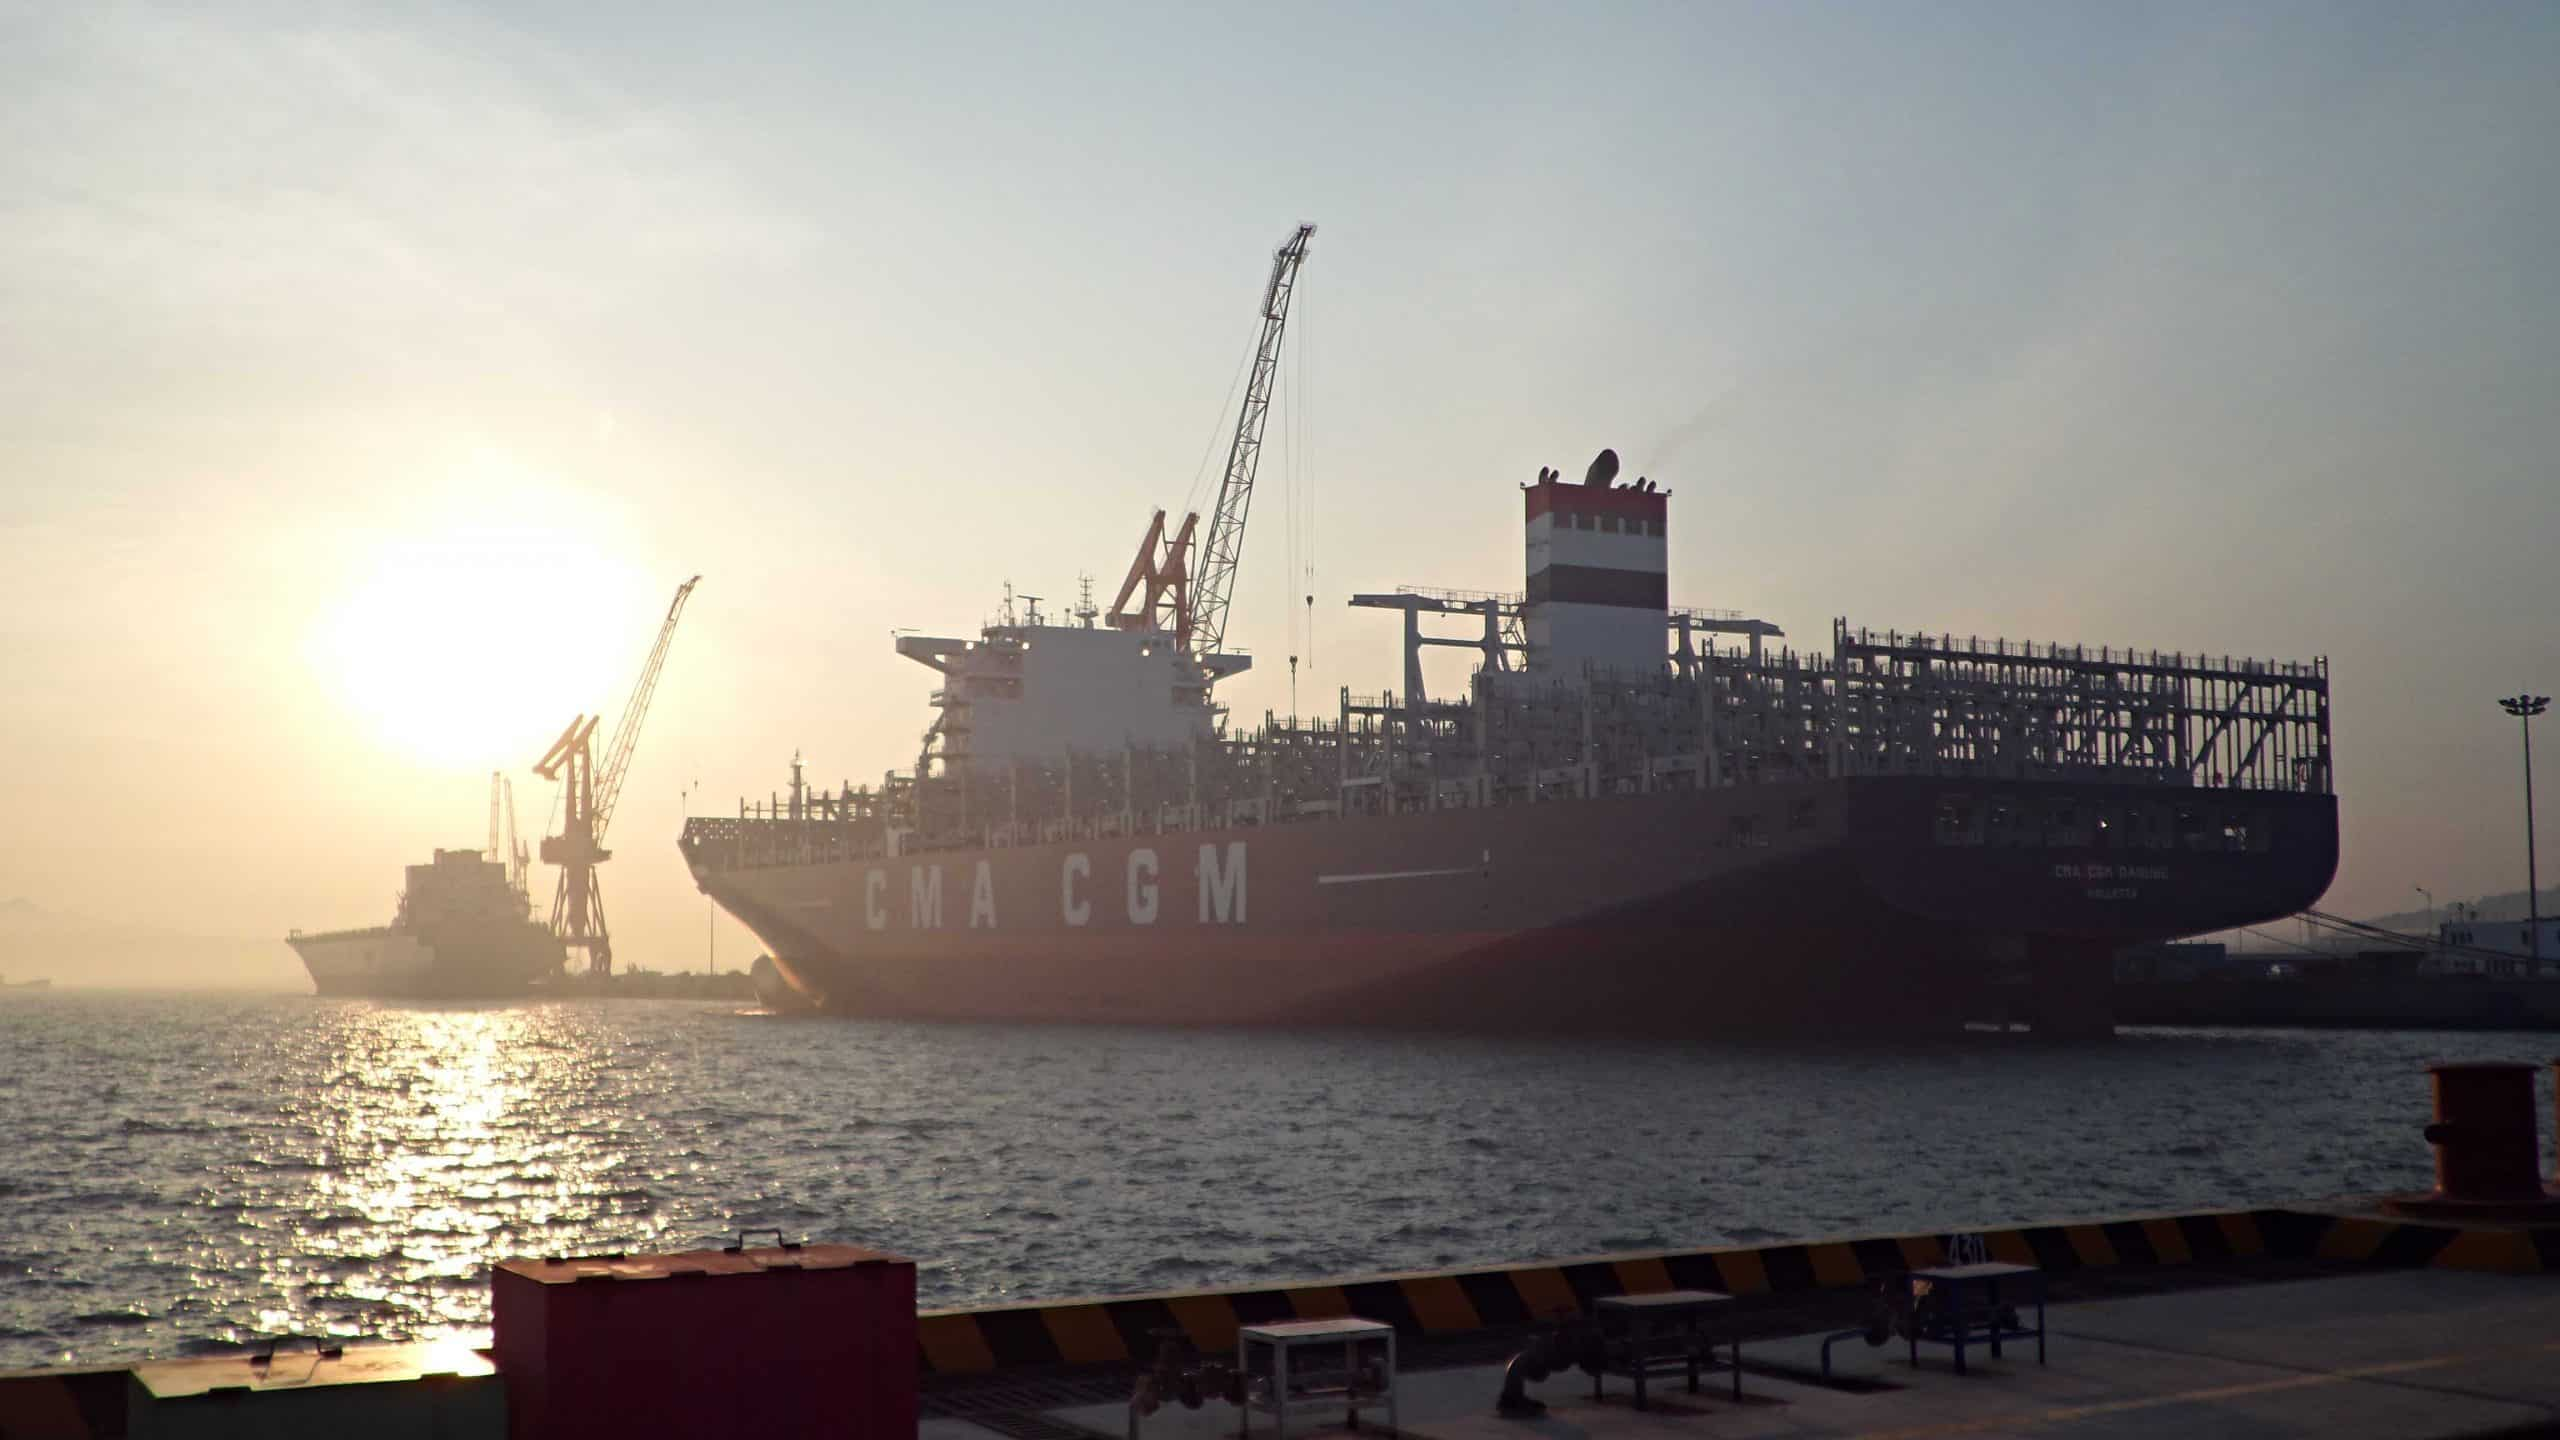 CMA CGM Danube launches